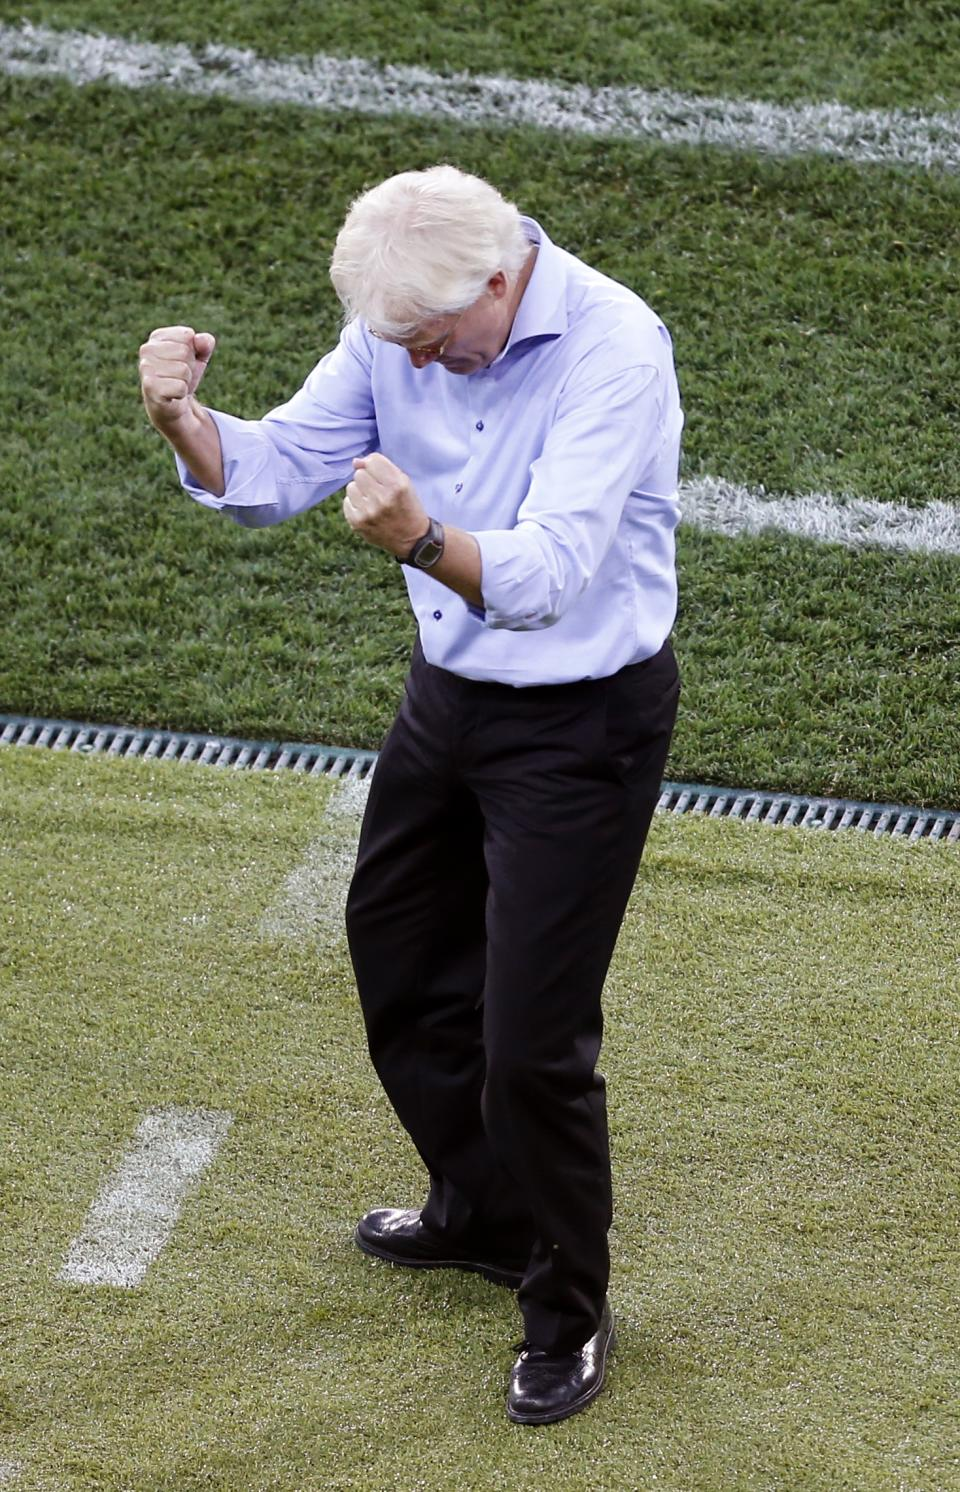 Denmark's head coach Morten Olsen celebrates his side's 1-0 win after the Euro 2012 soccer championship Group B match between the Netherlands and Denmark in Kharkiv , Ukraine, Saturday, June 9, 2012. (AP Photo/Michael Probst)